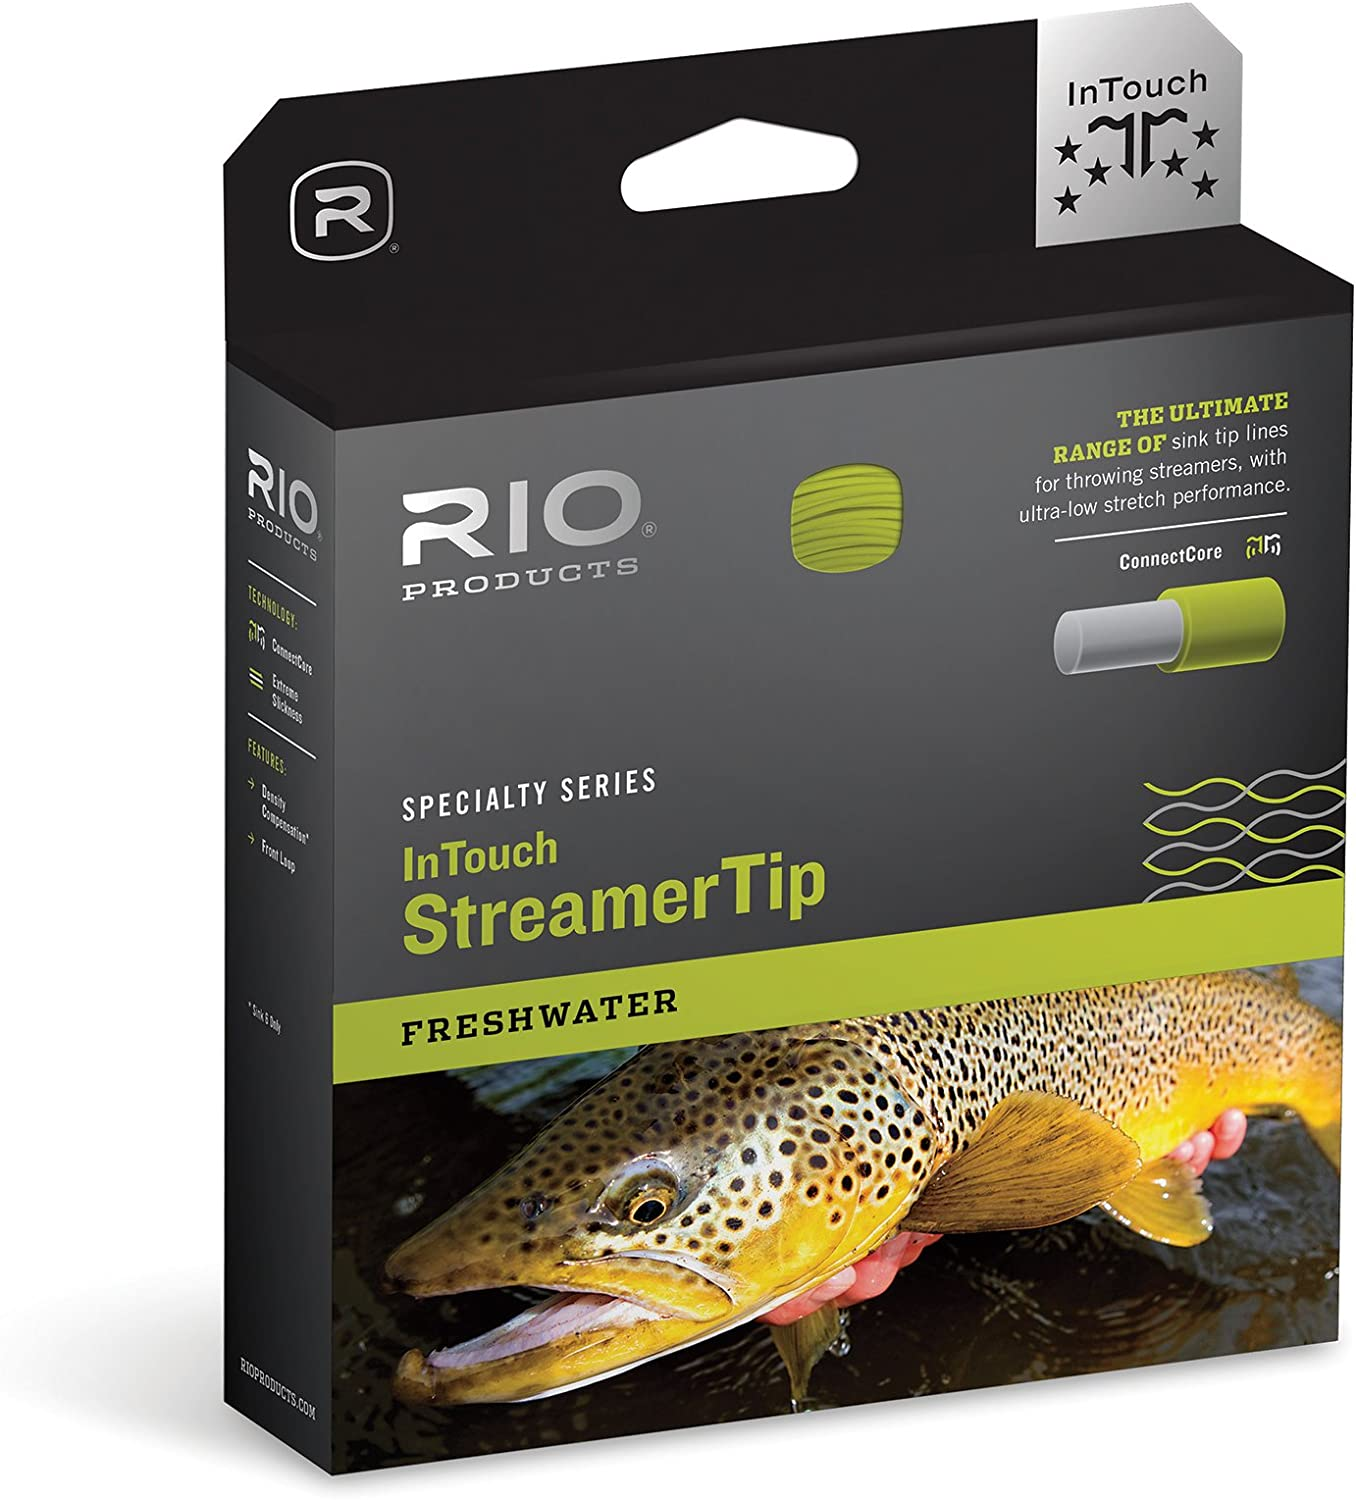 RIO Products Fly Line Intouch Streamertip 10' INT. Wf6F/I, Gray-Yellow-Pale-Green